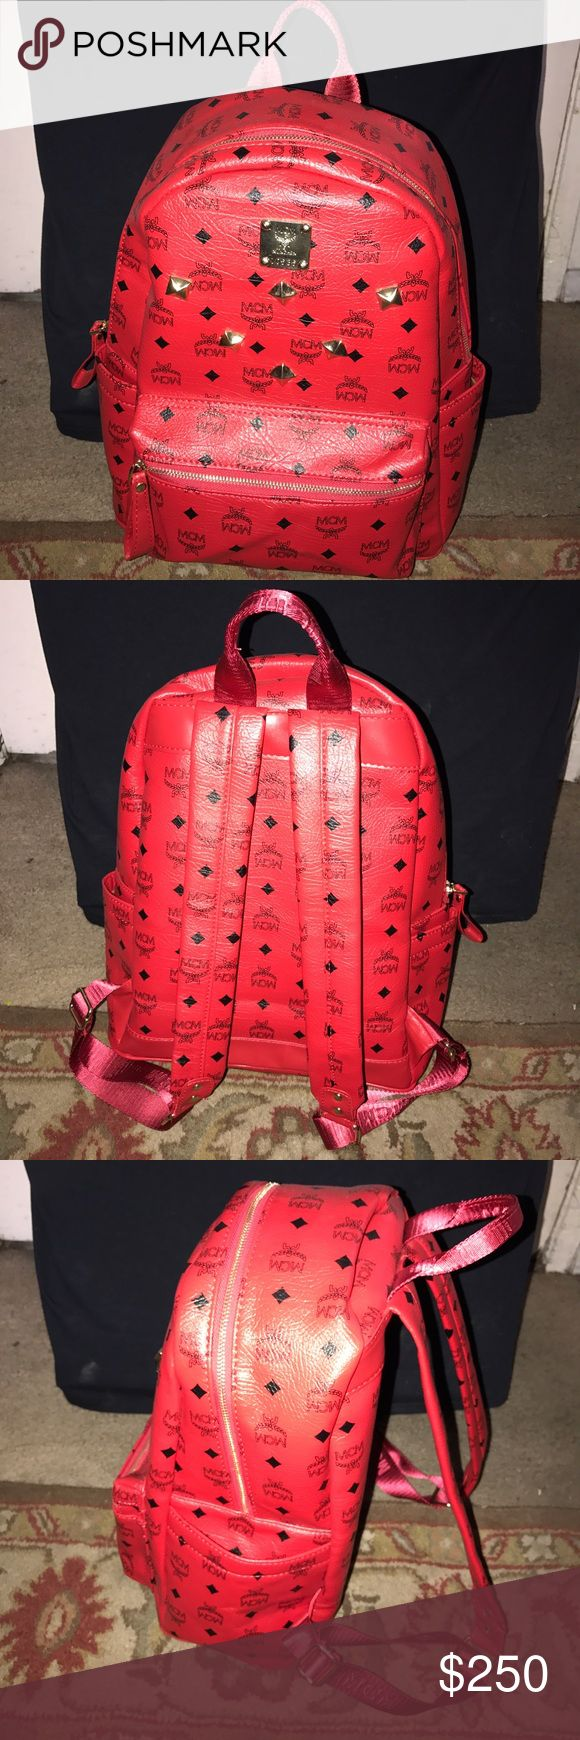 MCM BACKPACK Lightly worn  Red leather  No scratches or scuffs Size large MCM Bags Backpacks